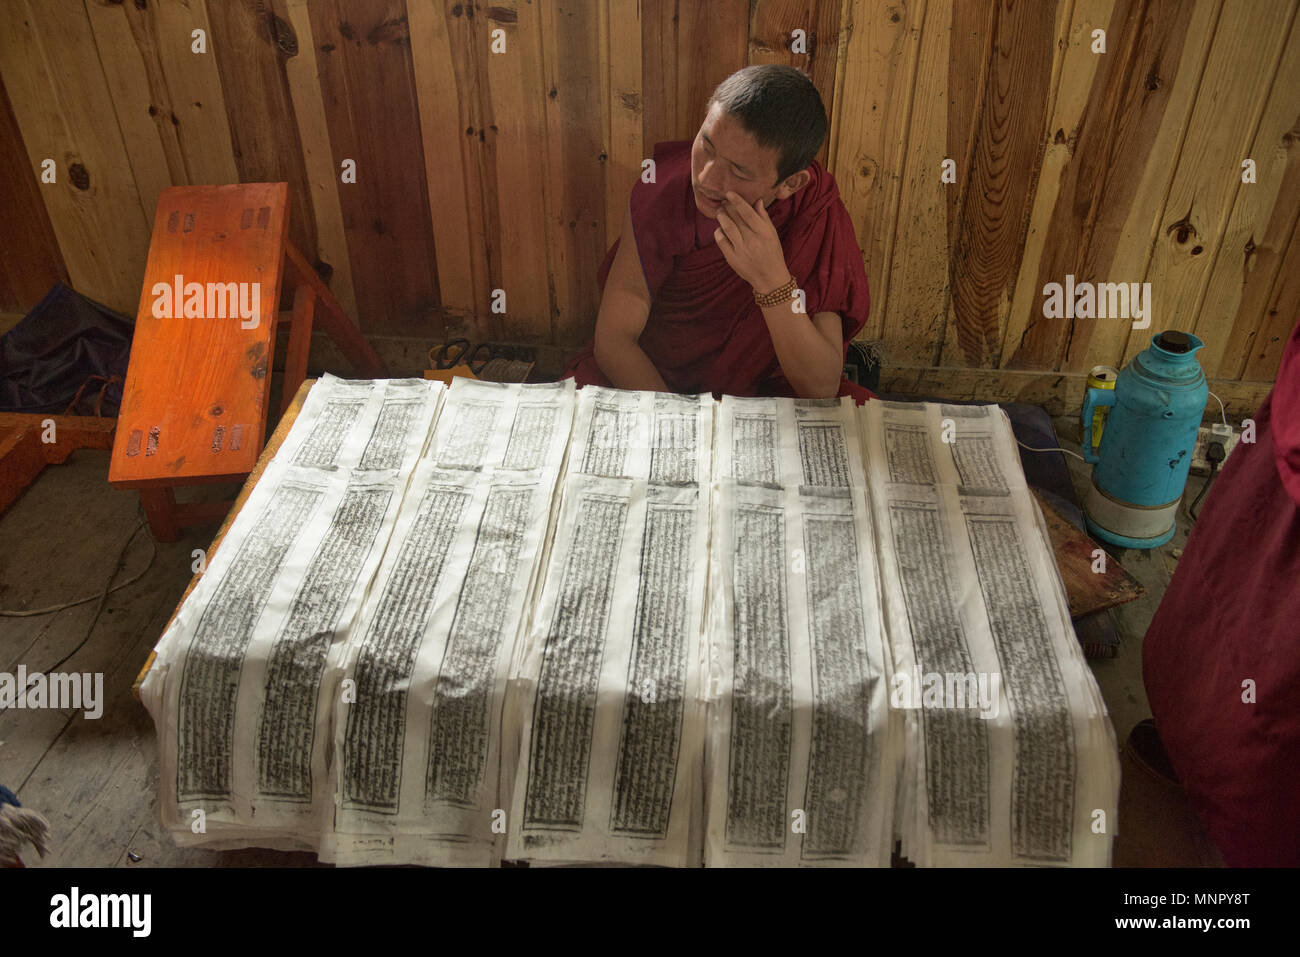 Monk Making Handmade Paper Scriptures And Woodblock Prints Inside The Holy Bakong Scripture Printing Press Monastery In Dege Sichuan China Stock Photo Alamy